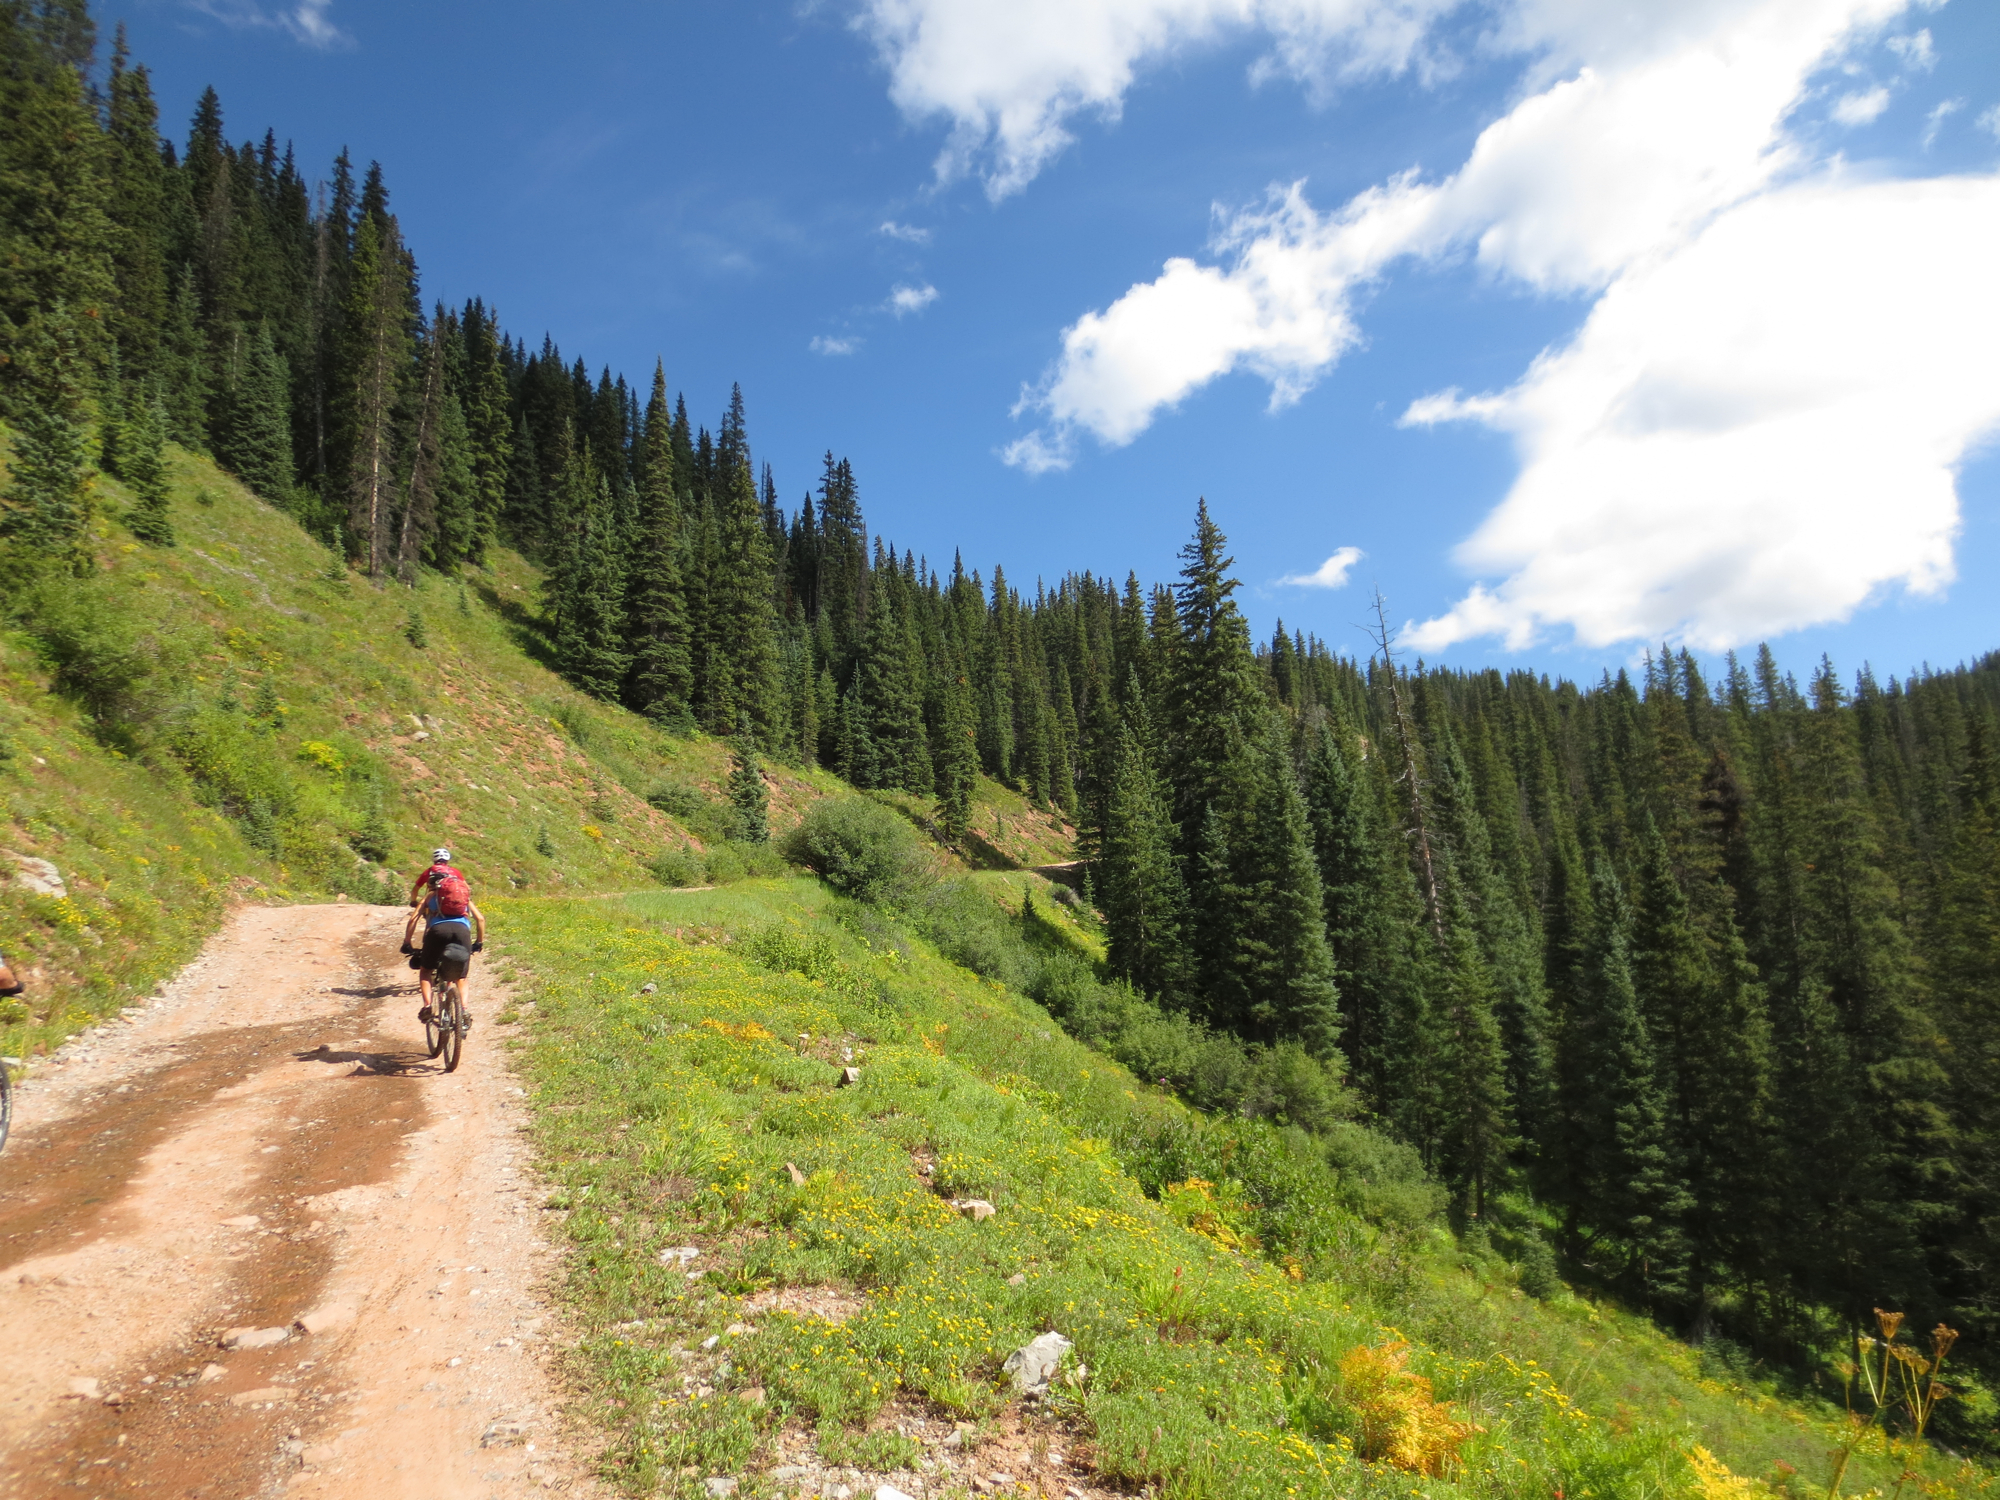 To avoid riding a bunch of trail we'd already done a million times, we began at the North Hermosa Trailhead. First up: Bolam Pass. That's one way to quickly become acquainted with your loaded bike's weight...